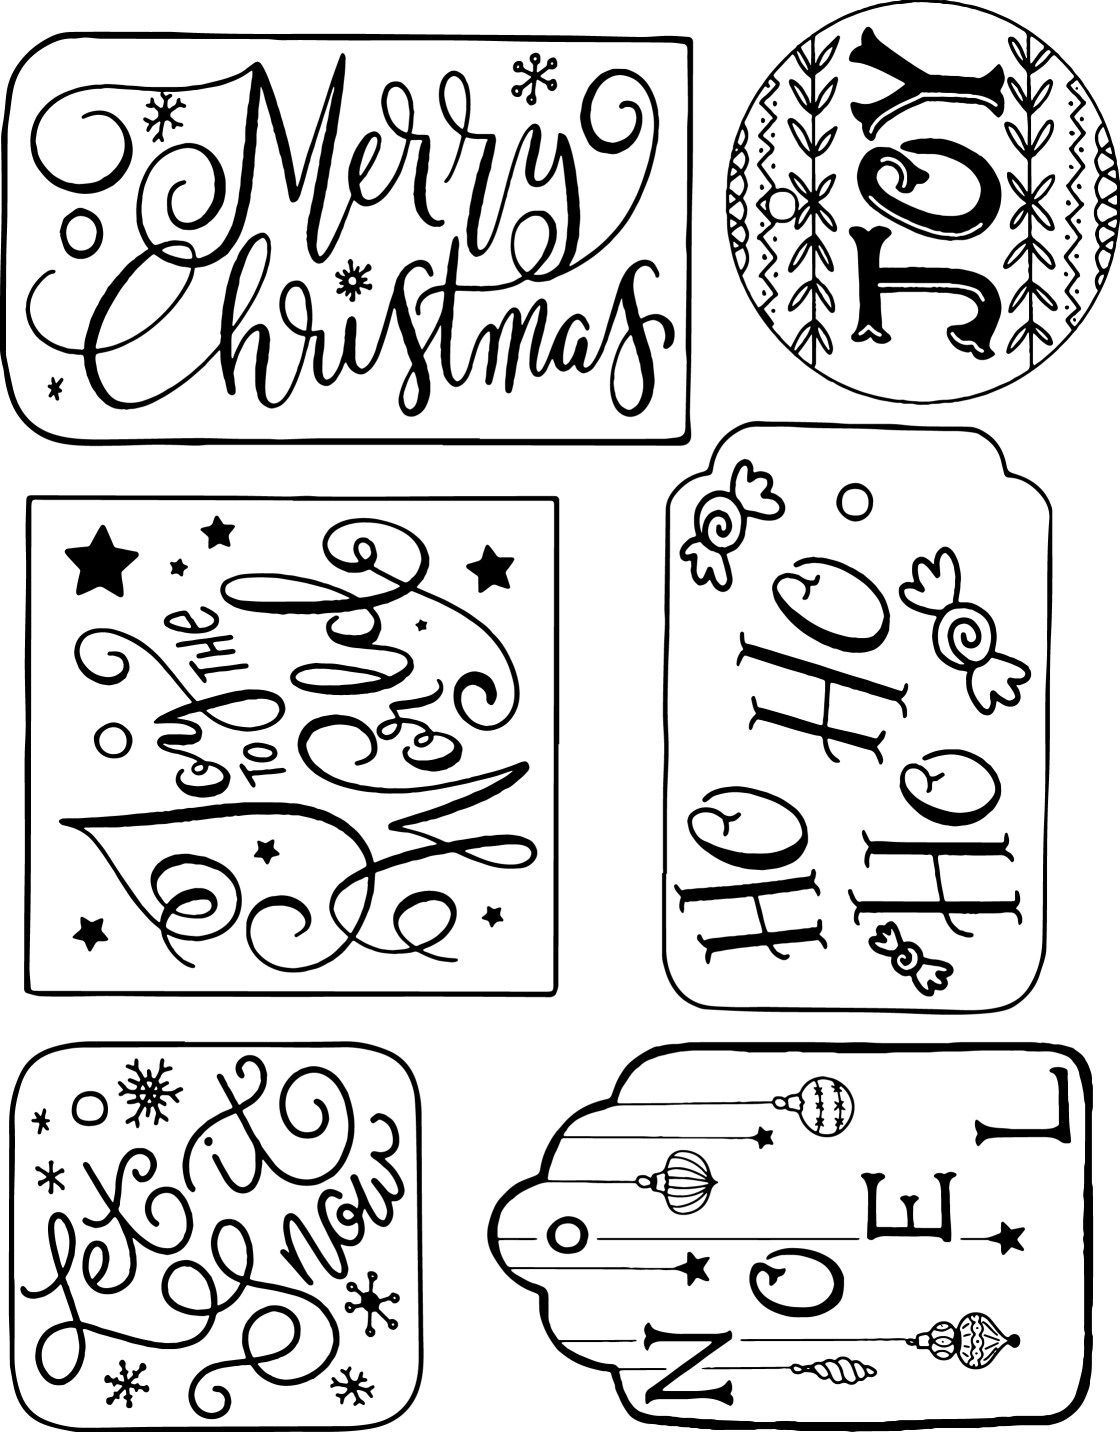 These Free Printable Gift Tags Are Perfect For Holiday Gift Wrapp Christmas Gift Tags Printable Free Printable Christmas Gift Tags Christmas Gift Tags Template